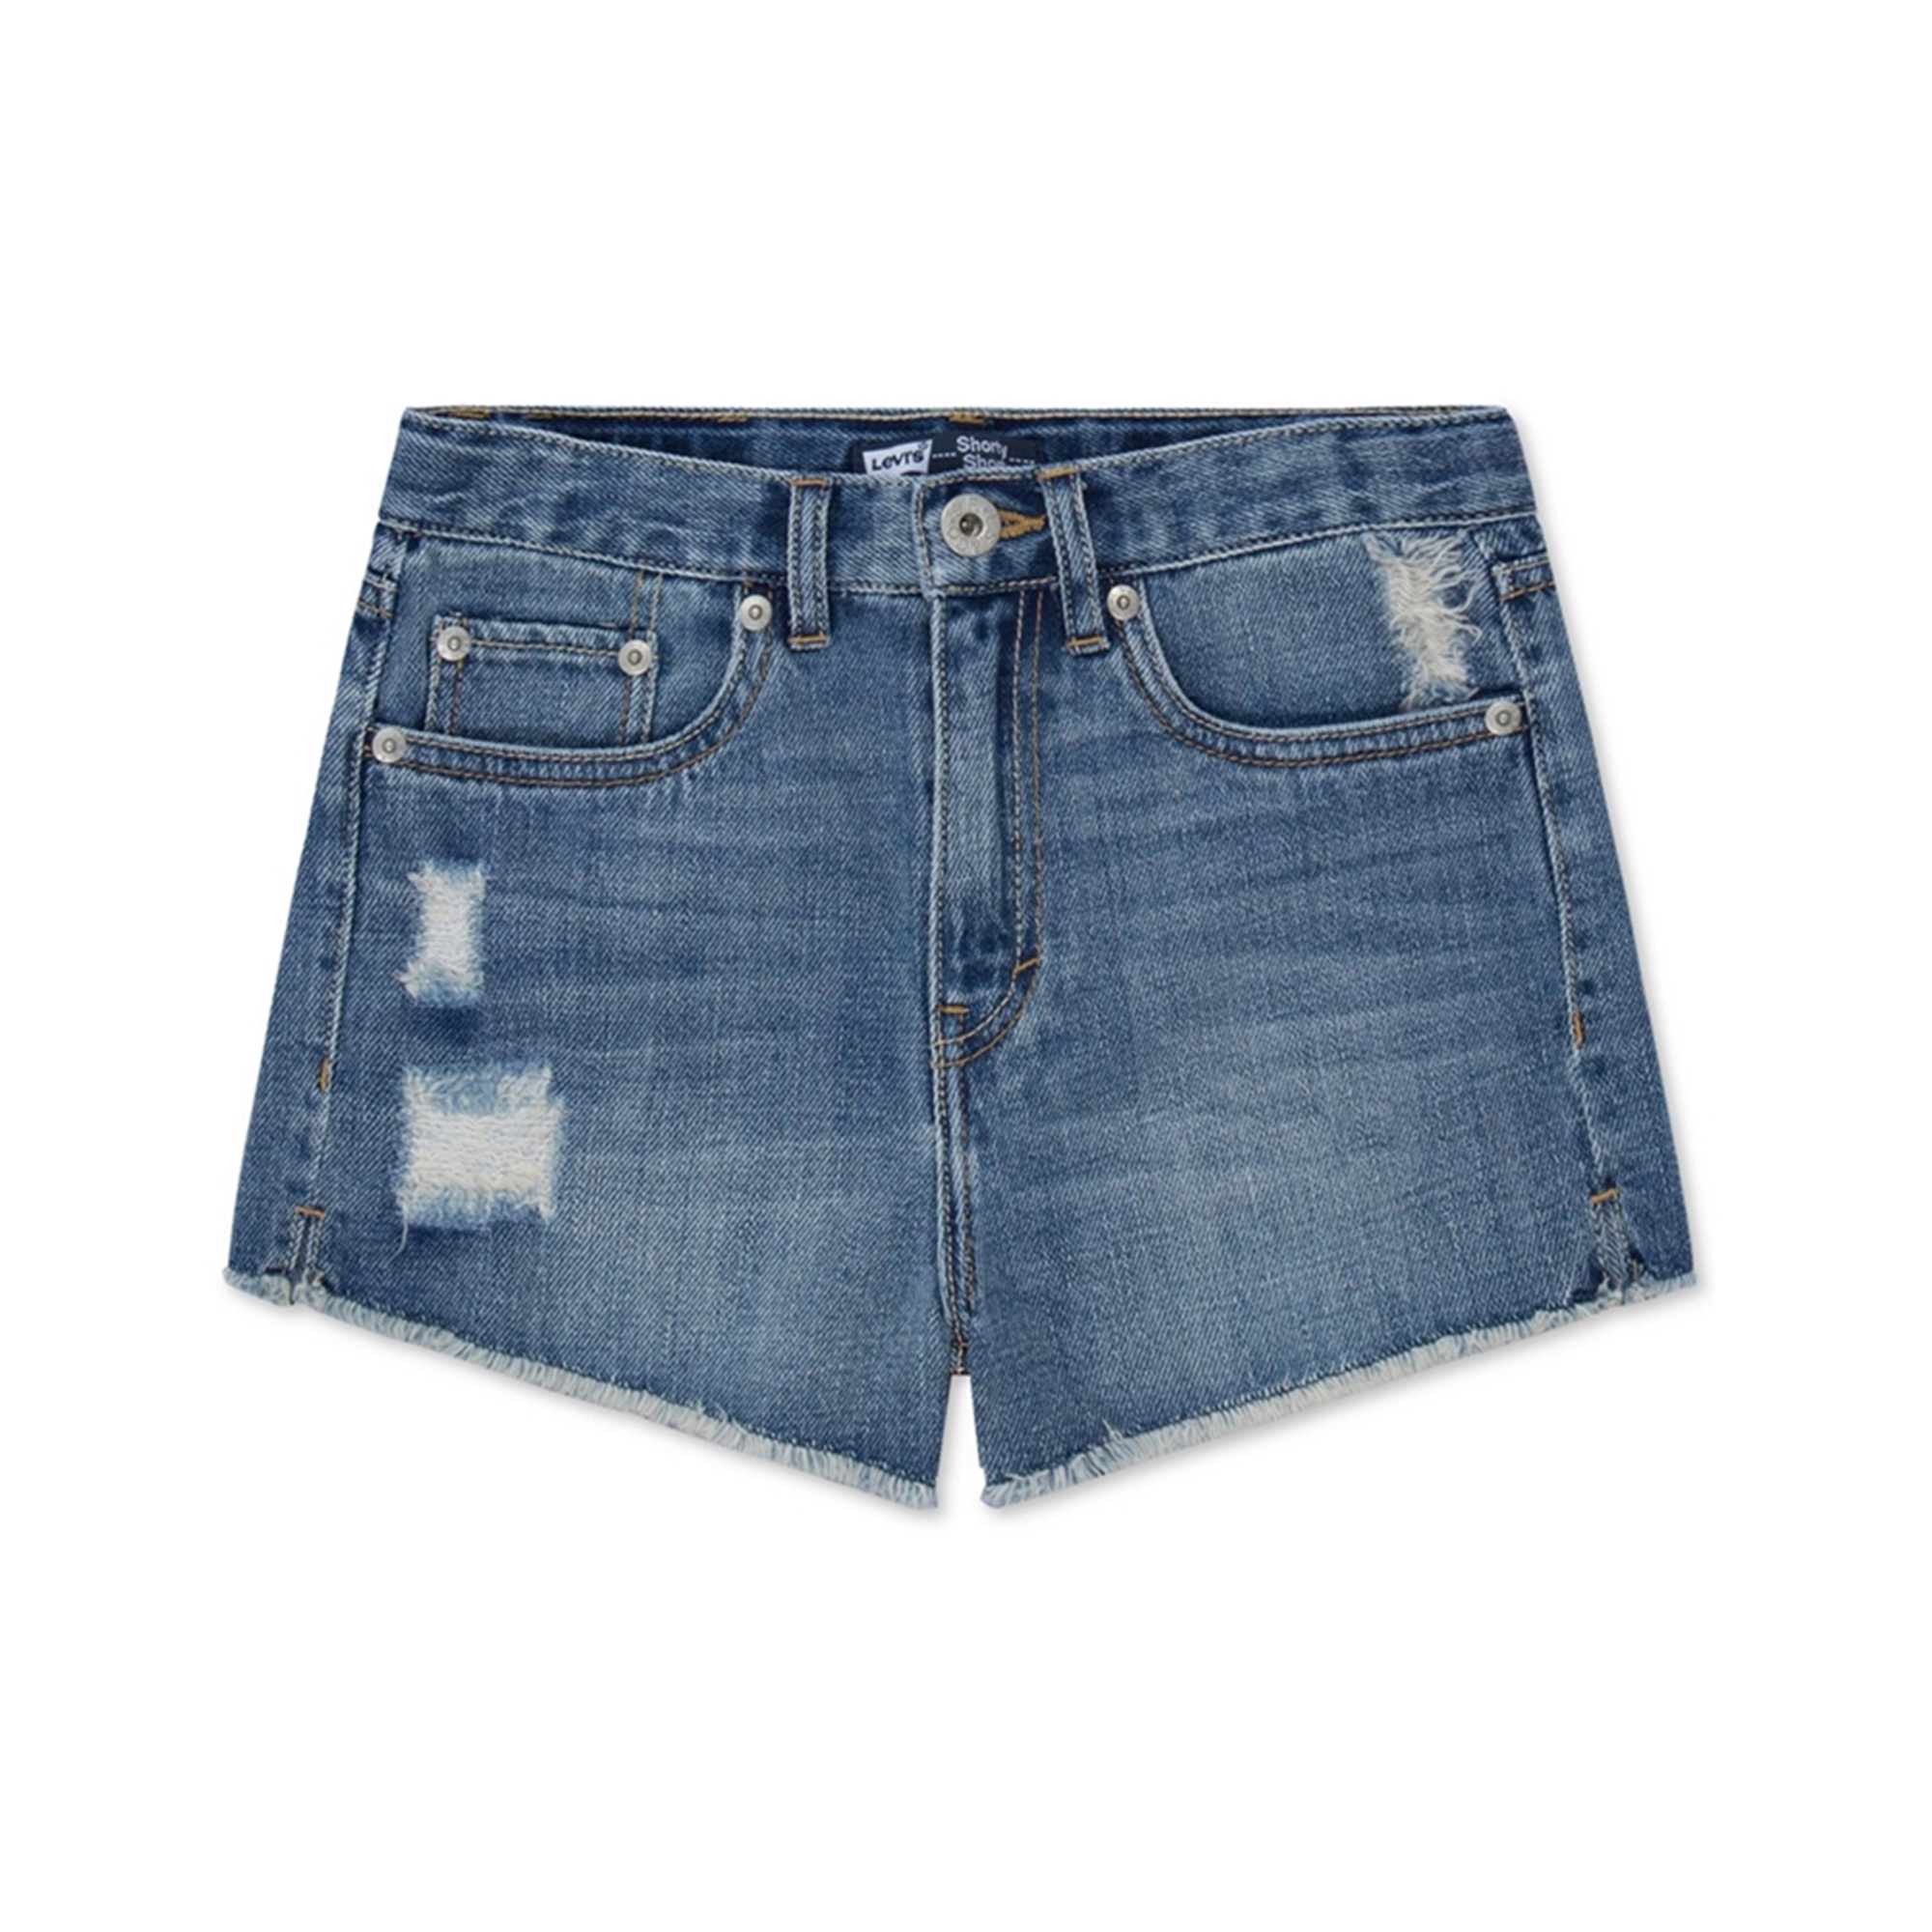 Levi's Girls High Rise Shorty Casual Denim Shorts